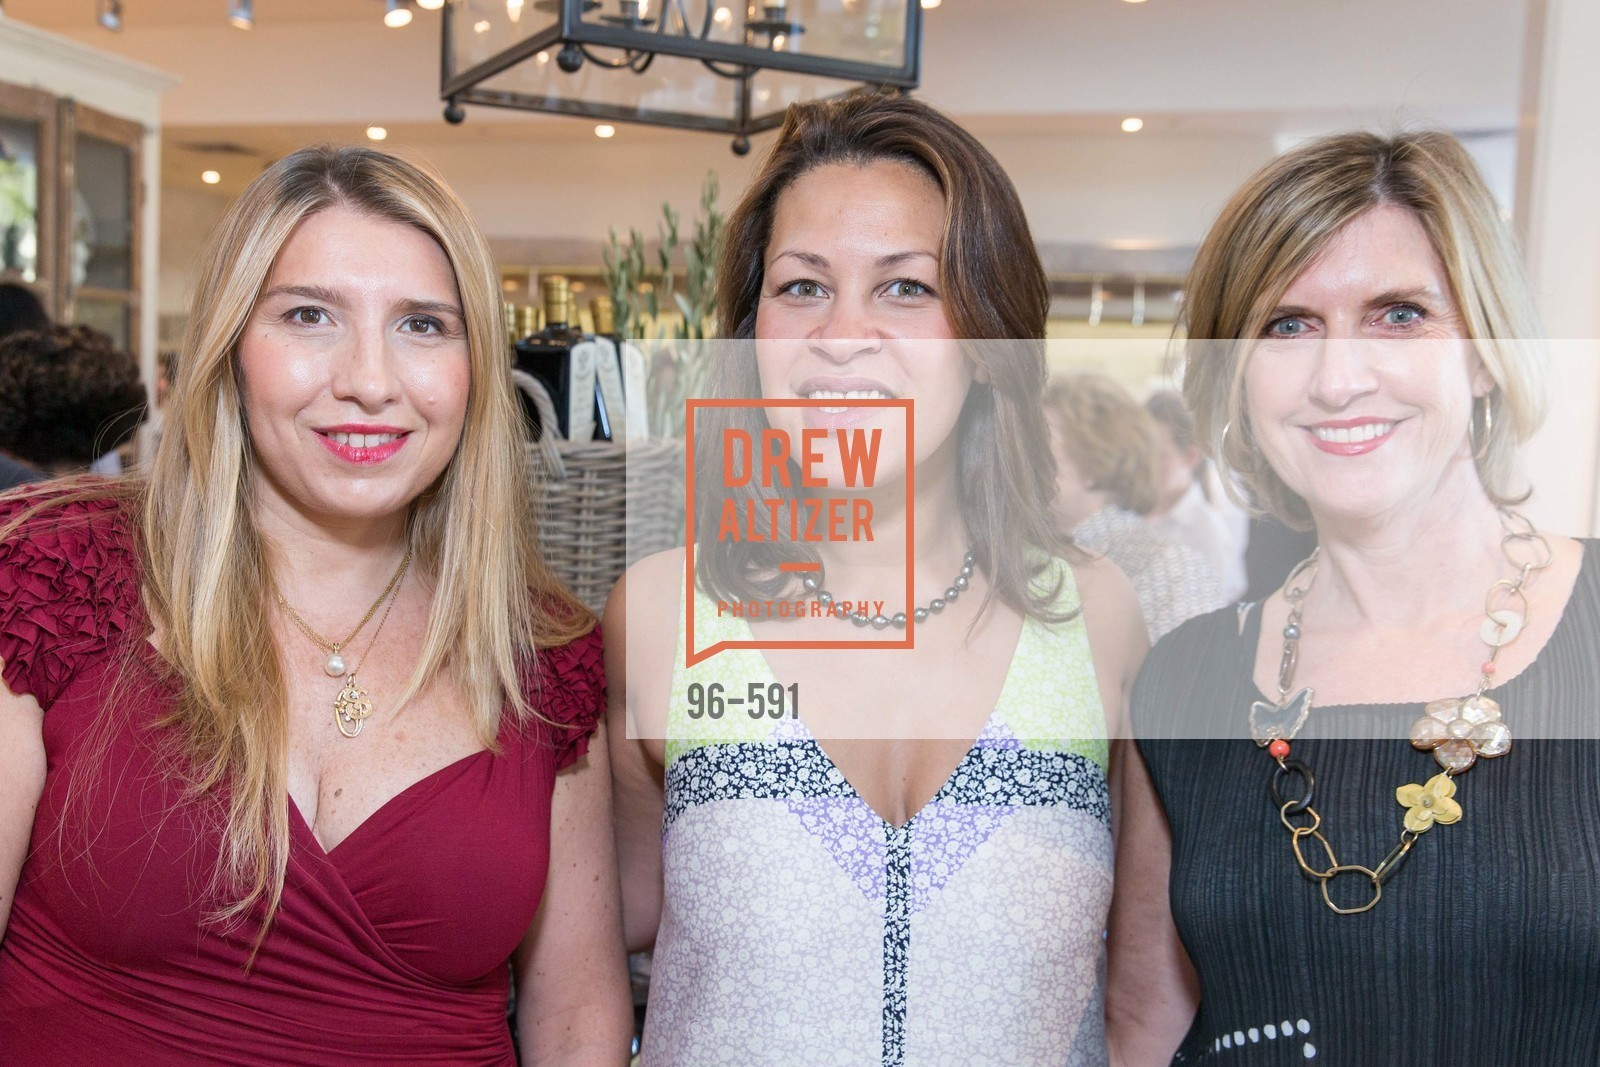 Sol Garay, Carrie Crespo-Dixon, Beth Tudor, CHUCK WILLIAMS Birthday Celebration, US, October 2nd, 2014,Drew Altizer, Drew Altizer Photography, full-service agency, private events, San Francisco photographer, photographer california